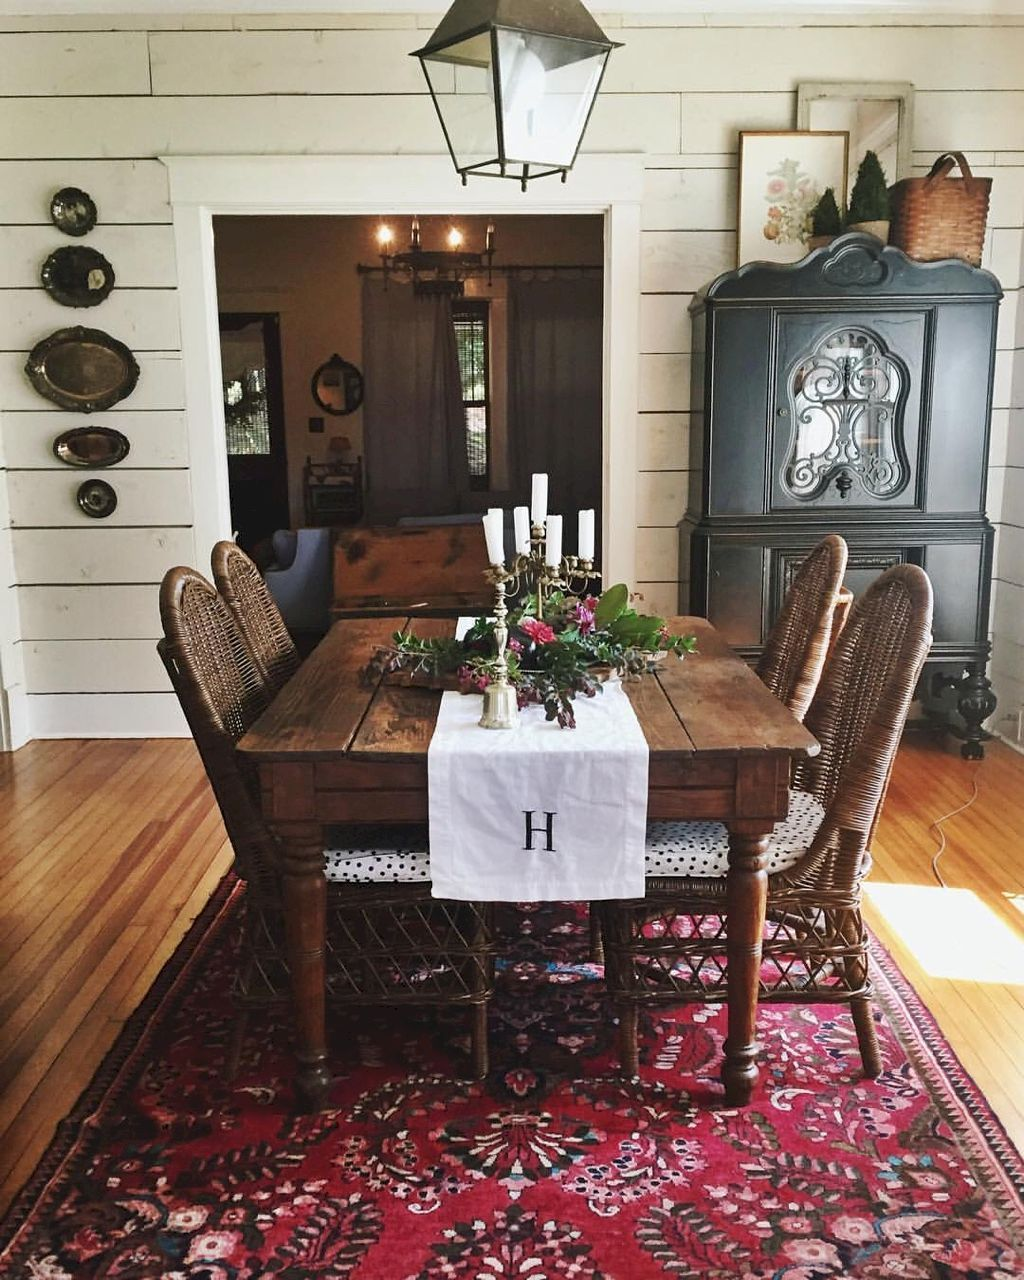 Farmhouse Style Dining Room Table And Decor Ideas 26  Farmhouse Mesmerizing Farm Style Dining Room Table Decorating Design